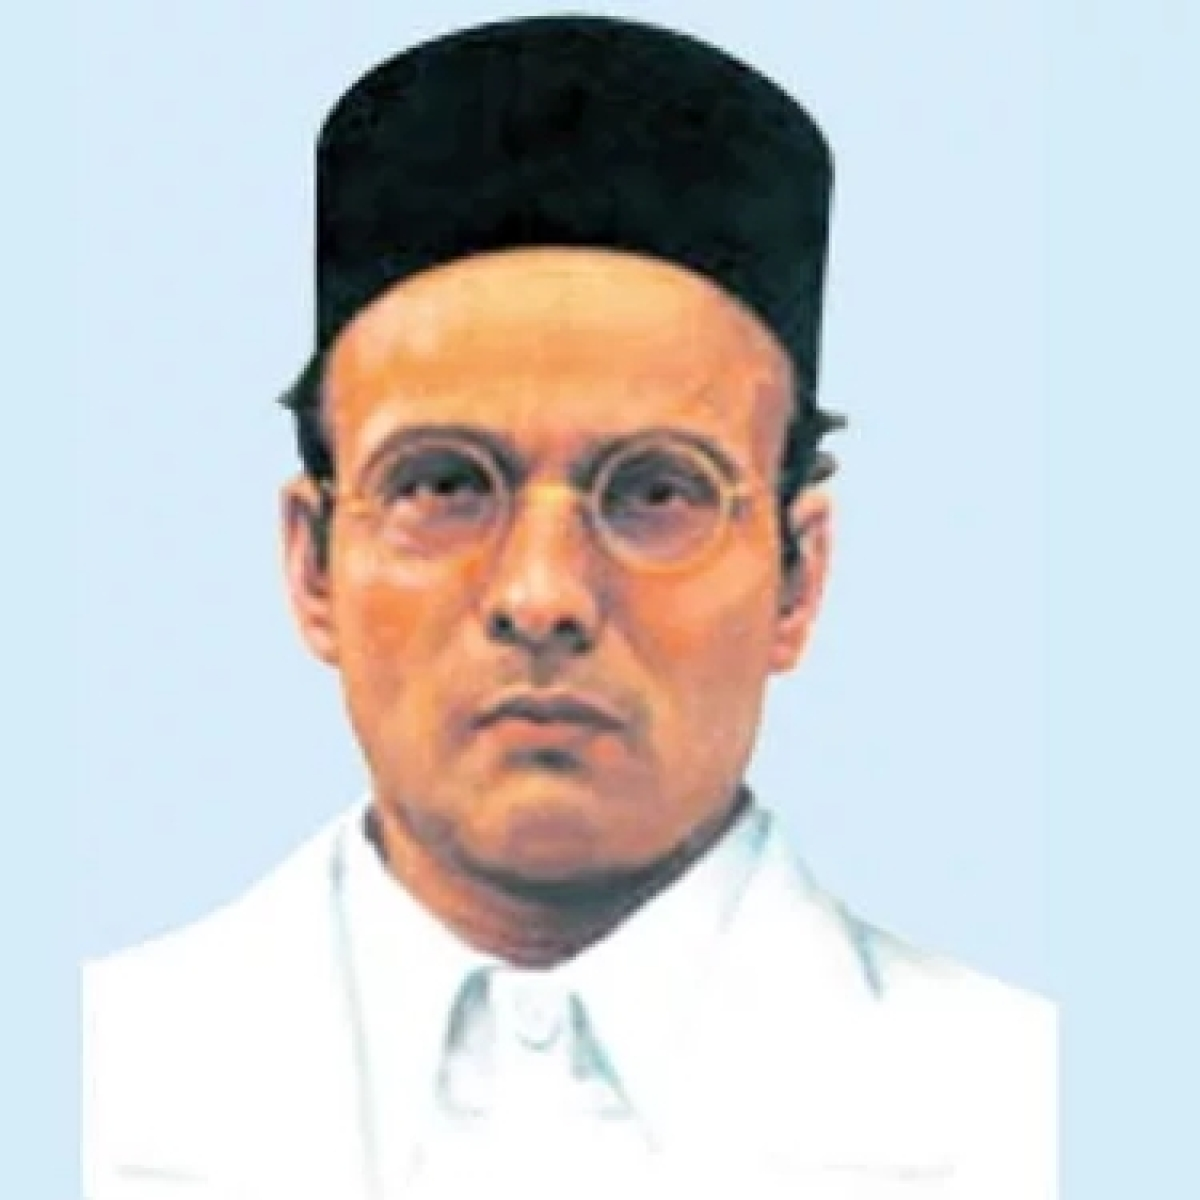 Savarkar Jayanti 2020: From Indira's praise to Rahul's mockery - Congress' complex relationship with Hindutva icon